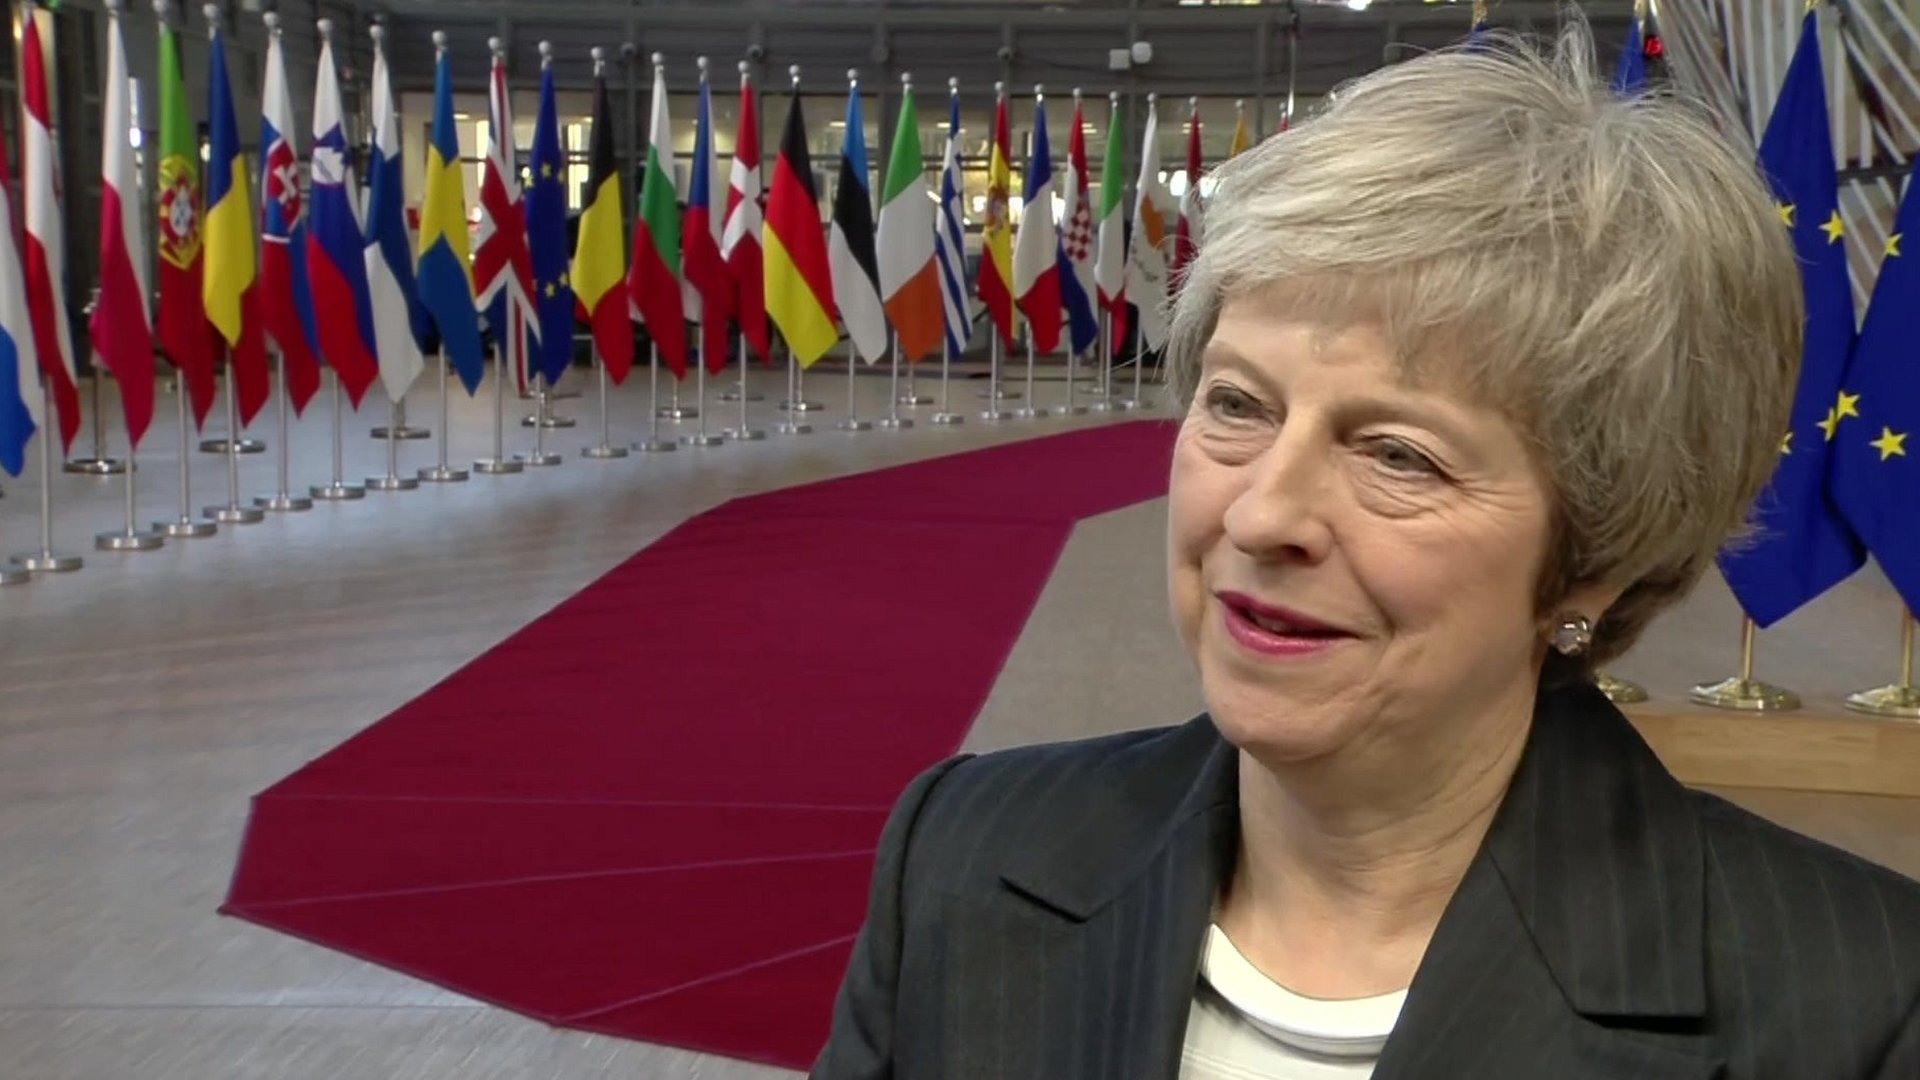 Brexit: Theresa May arrives at EU summit after surviving vote